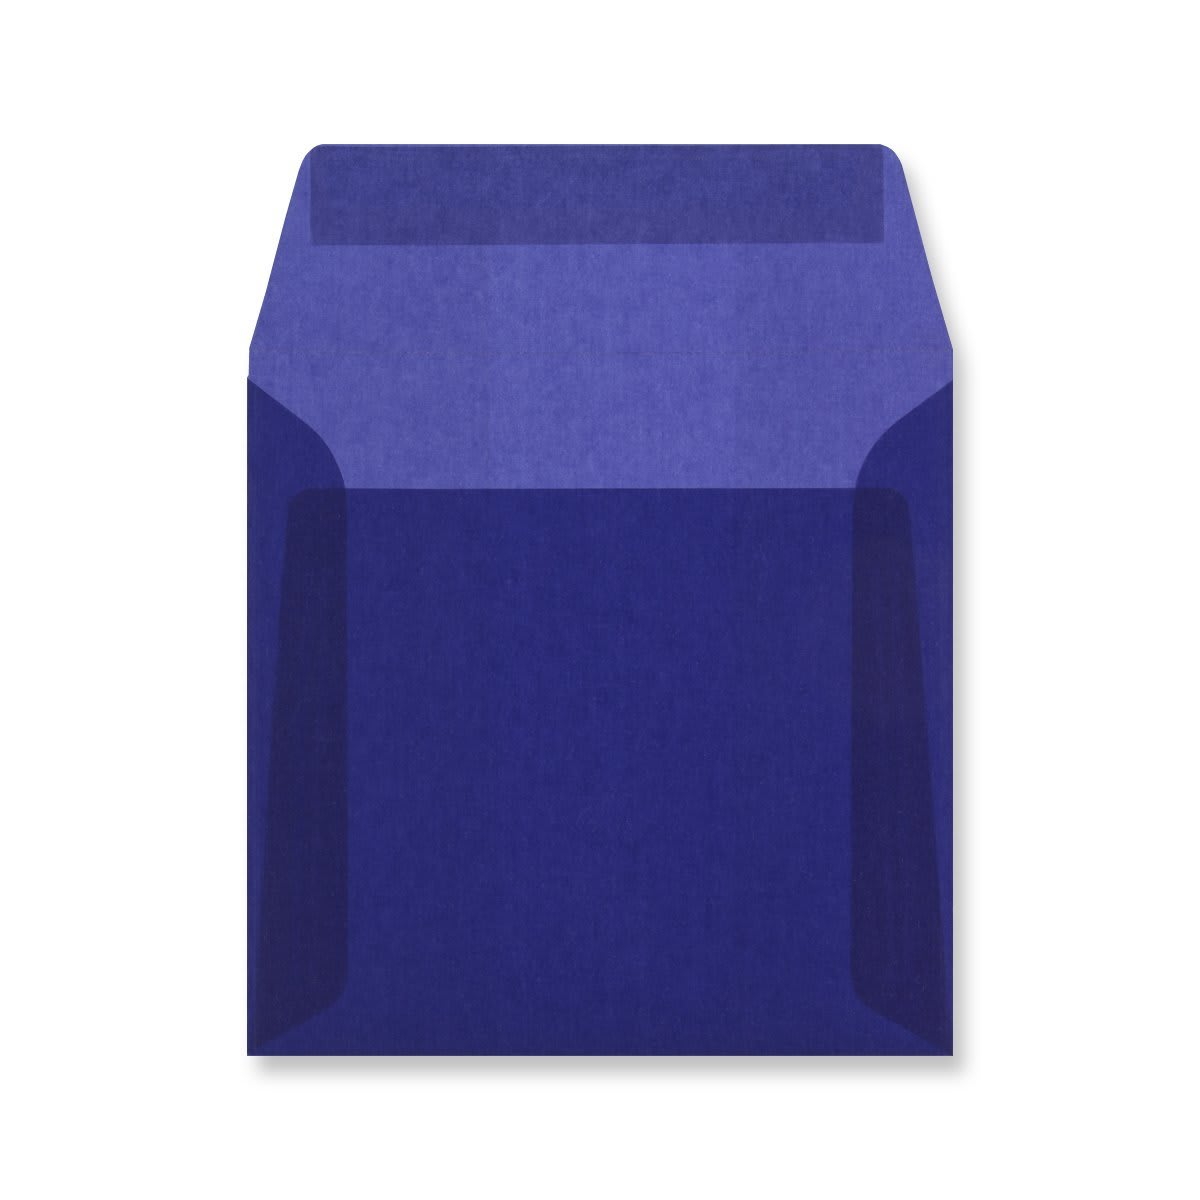 125 x 125MM DARK BLUE TRANSLUCENT ENVELOPES